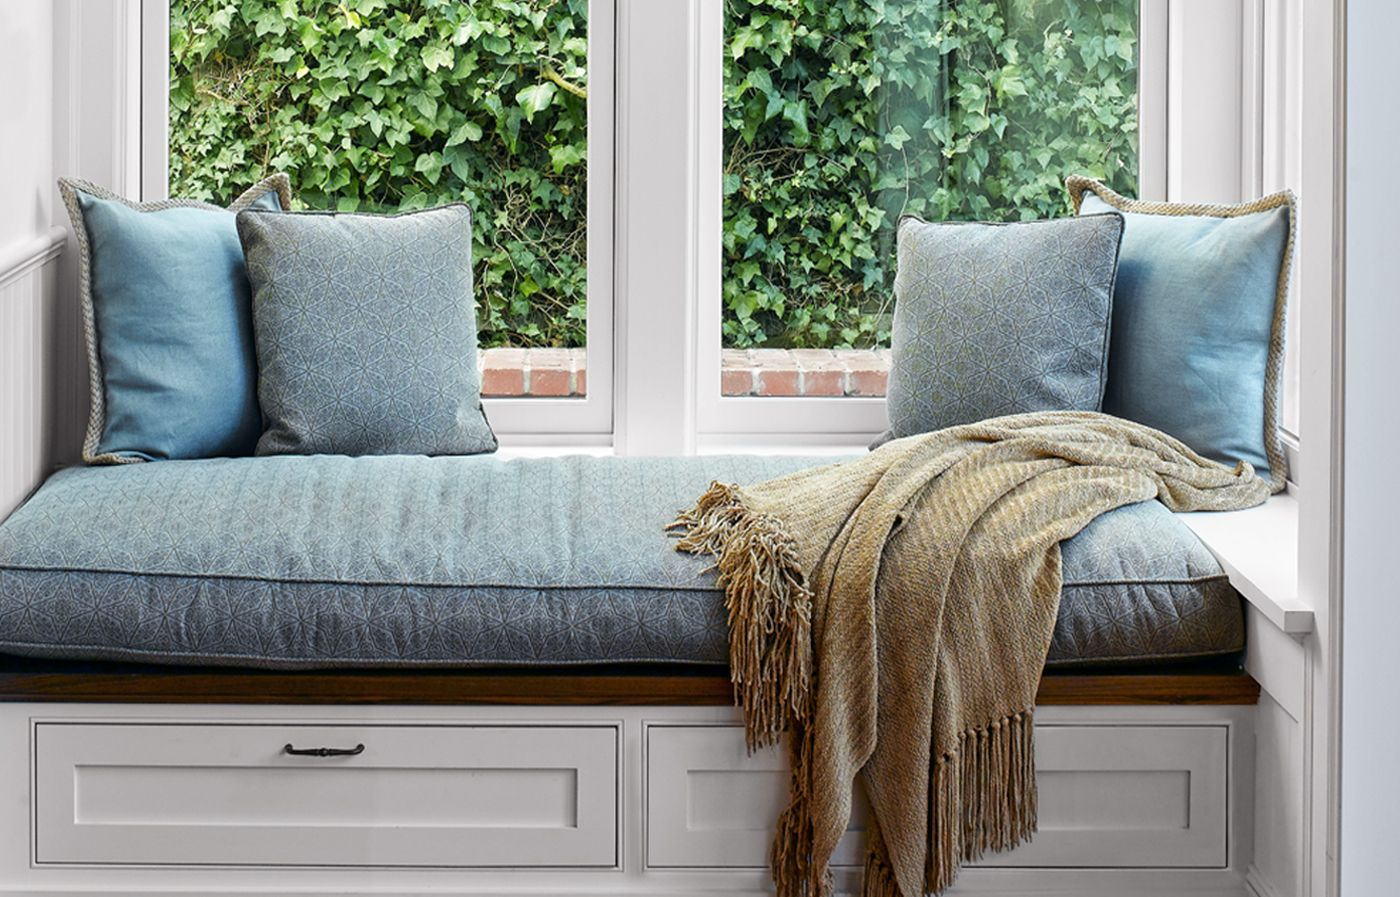 build a custom look window seat using stock kitchen cabinets home window benches house on kitchen cabinets around window id=19021